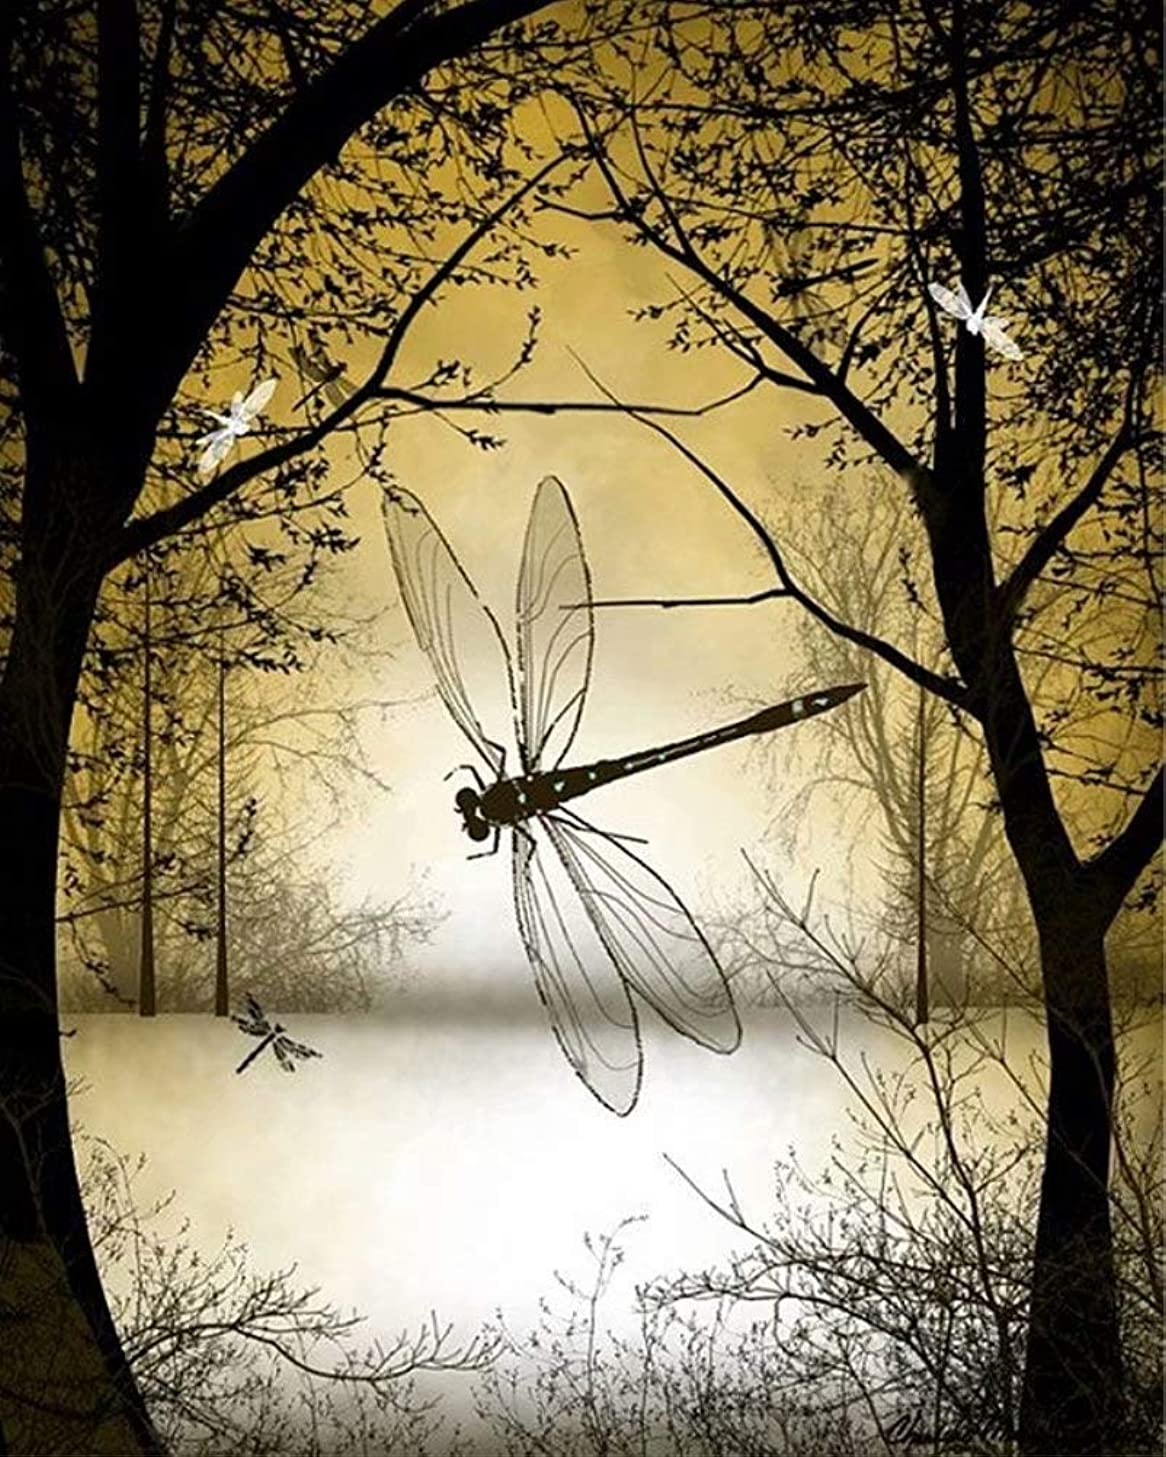 DIY 5D Diamond Painting Kit for Adults Children, NYEBS DIY Painting with Diamonds Animal Full Square Drill Forest Dragonfly Rhinestone Embroidery Arts Craft Supply for Wall Decoration 12X16 inches